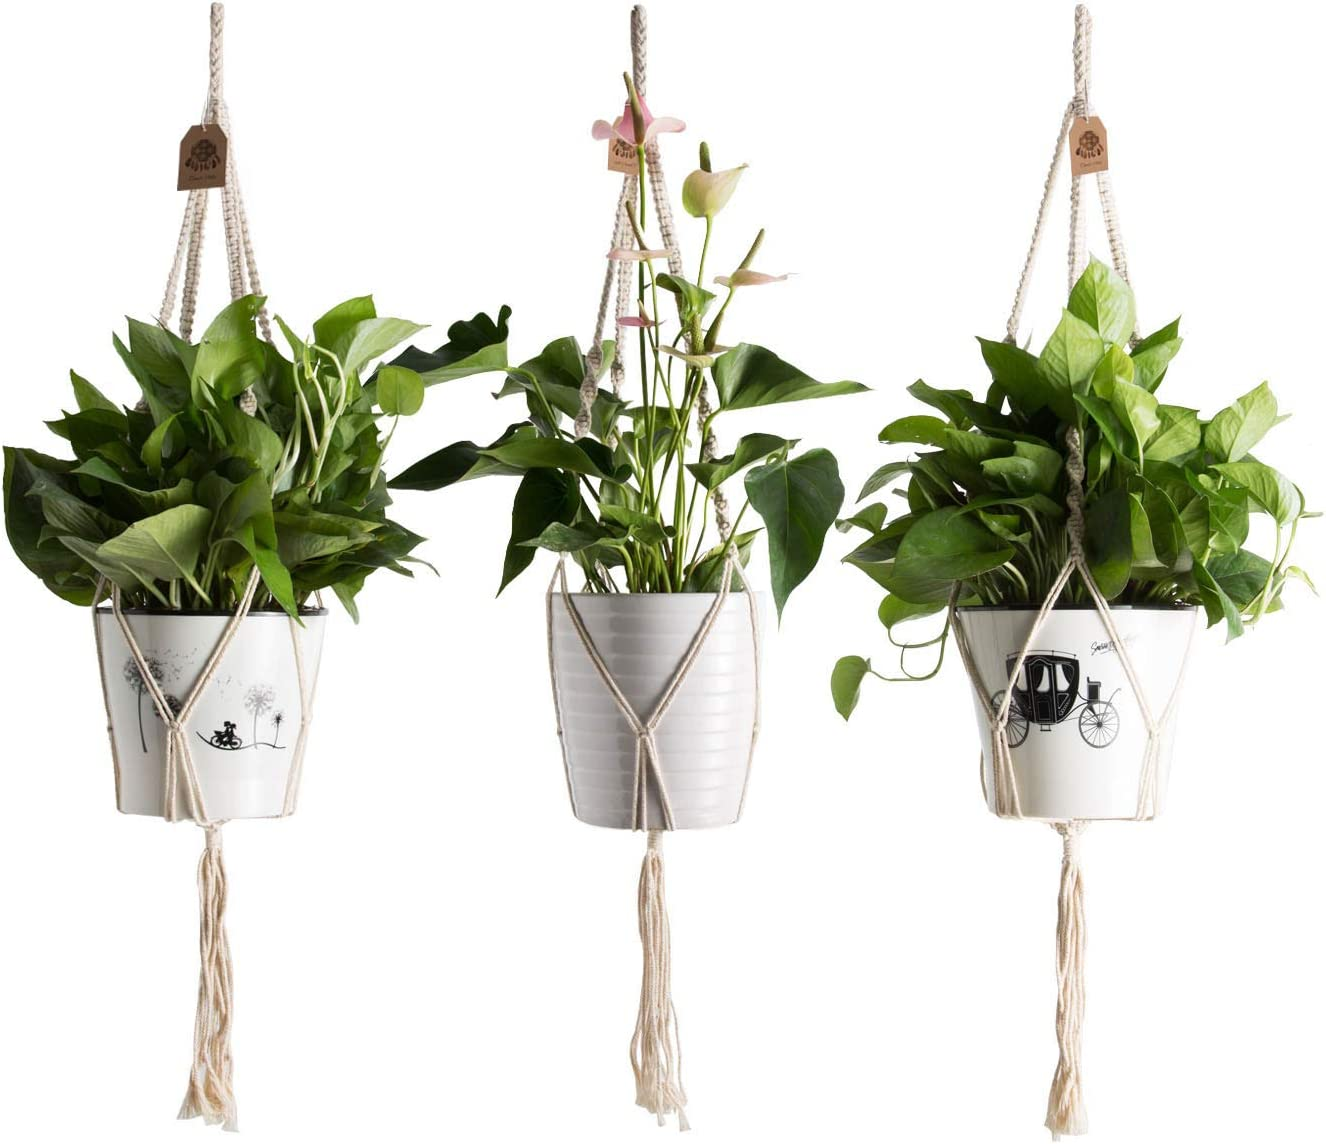 TOUCH MISS 3 Pcs Macrame Plant Hanger Indoor Outdoor Hanging Planter Basket Wall Cotton Rope Bohemian Home Decor 4 Legs 35.5 Inch Creamy White